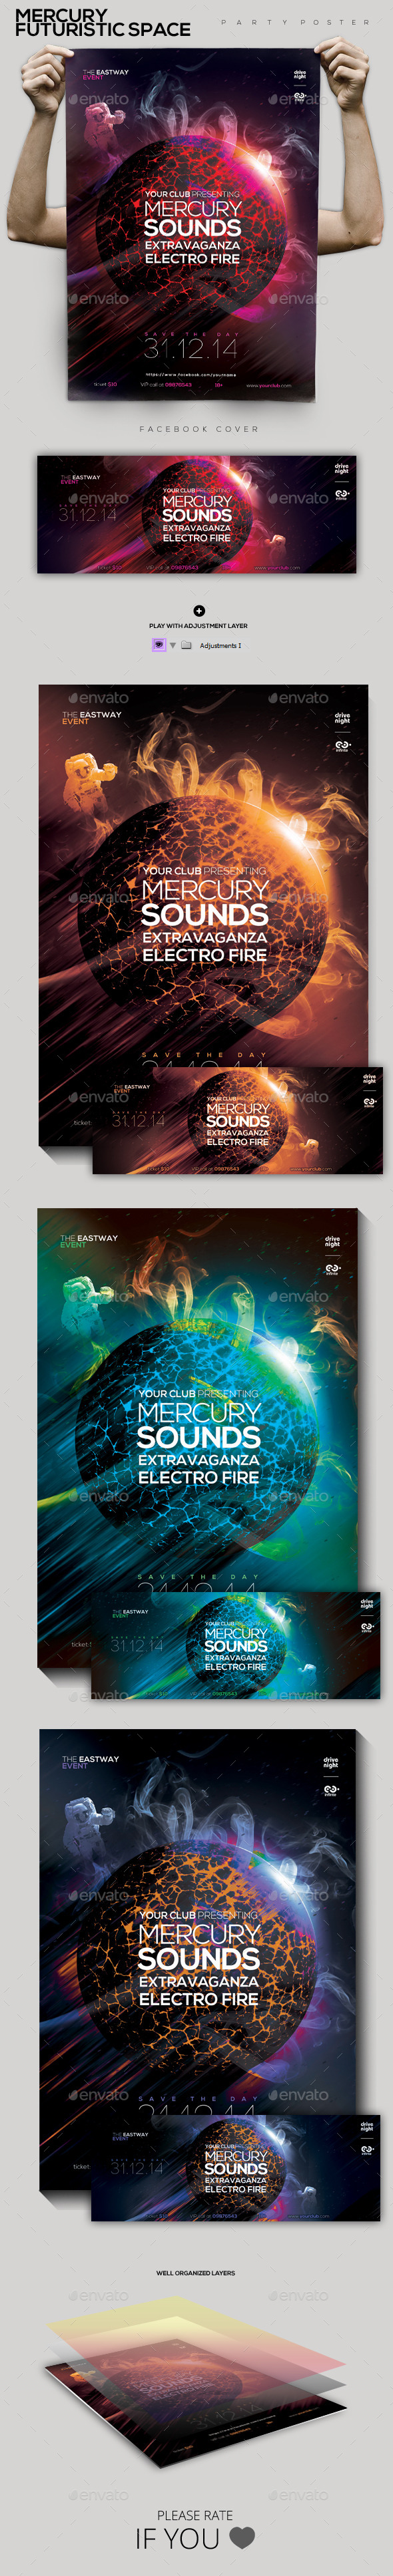 Mercury Futuristic Space Party Flyer/Poster - Clubs & Parties Events